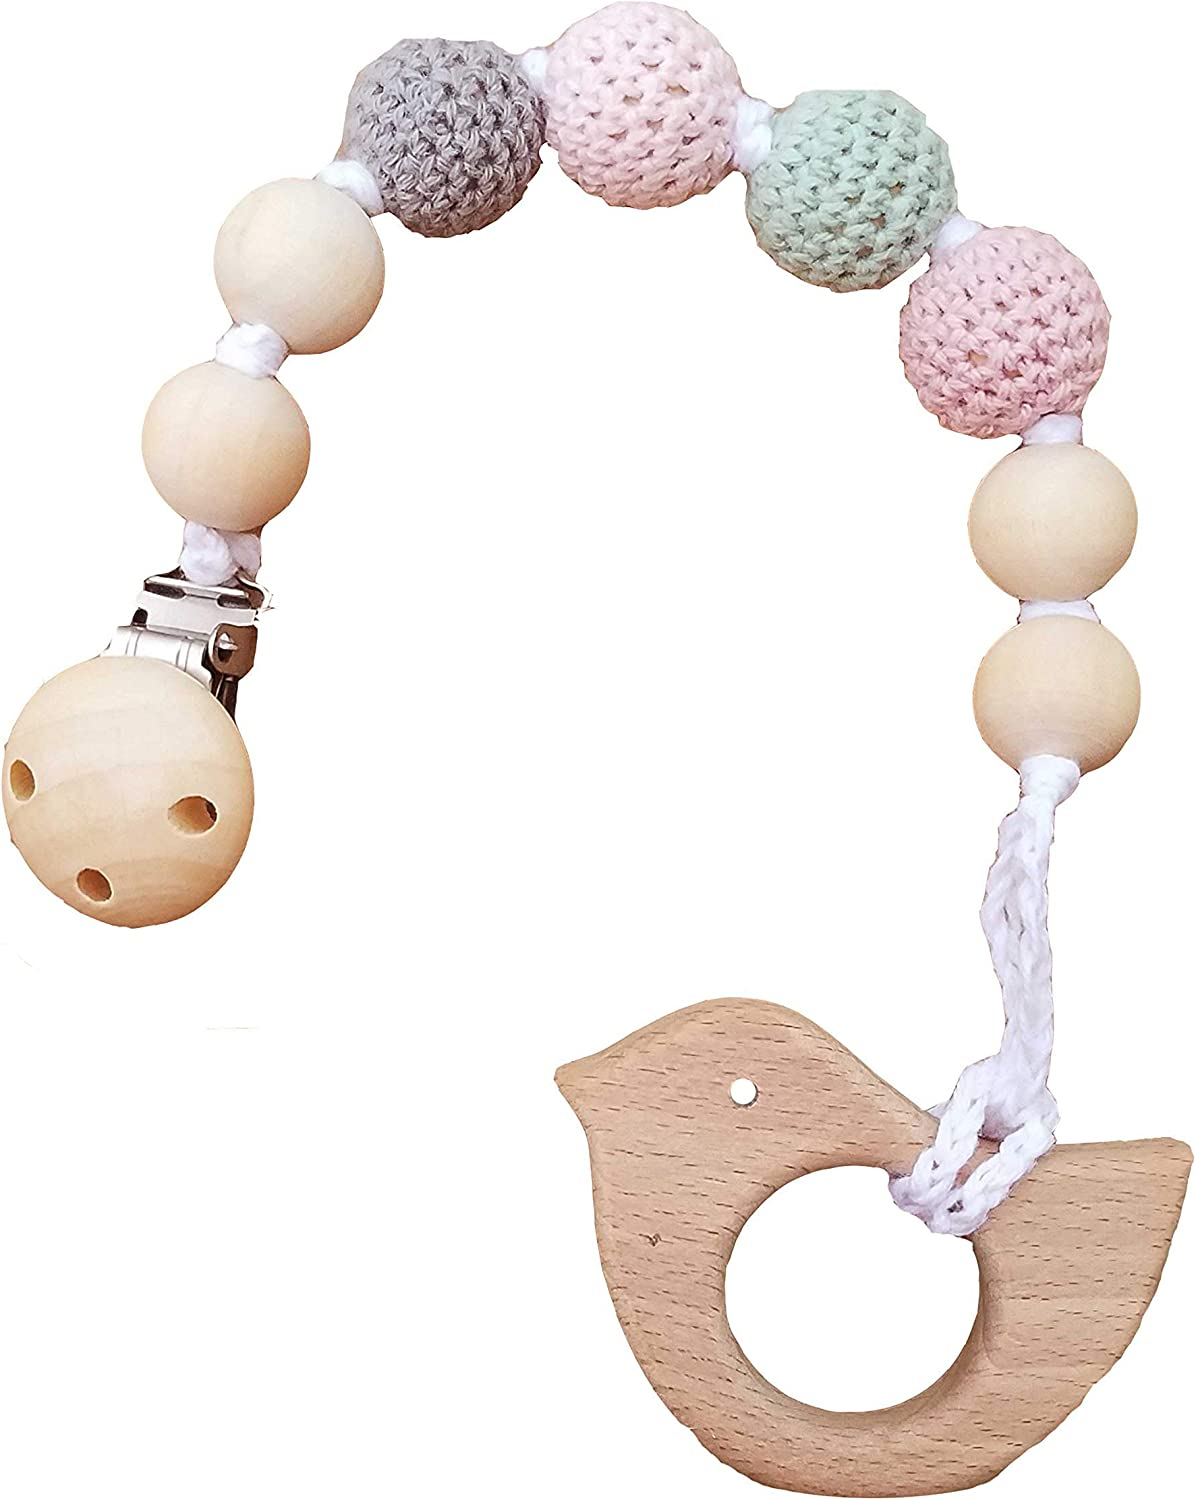 Silicone Lollipop Teether DIY Teething Baby Sensory Toys Pacifier Chain Pendant